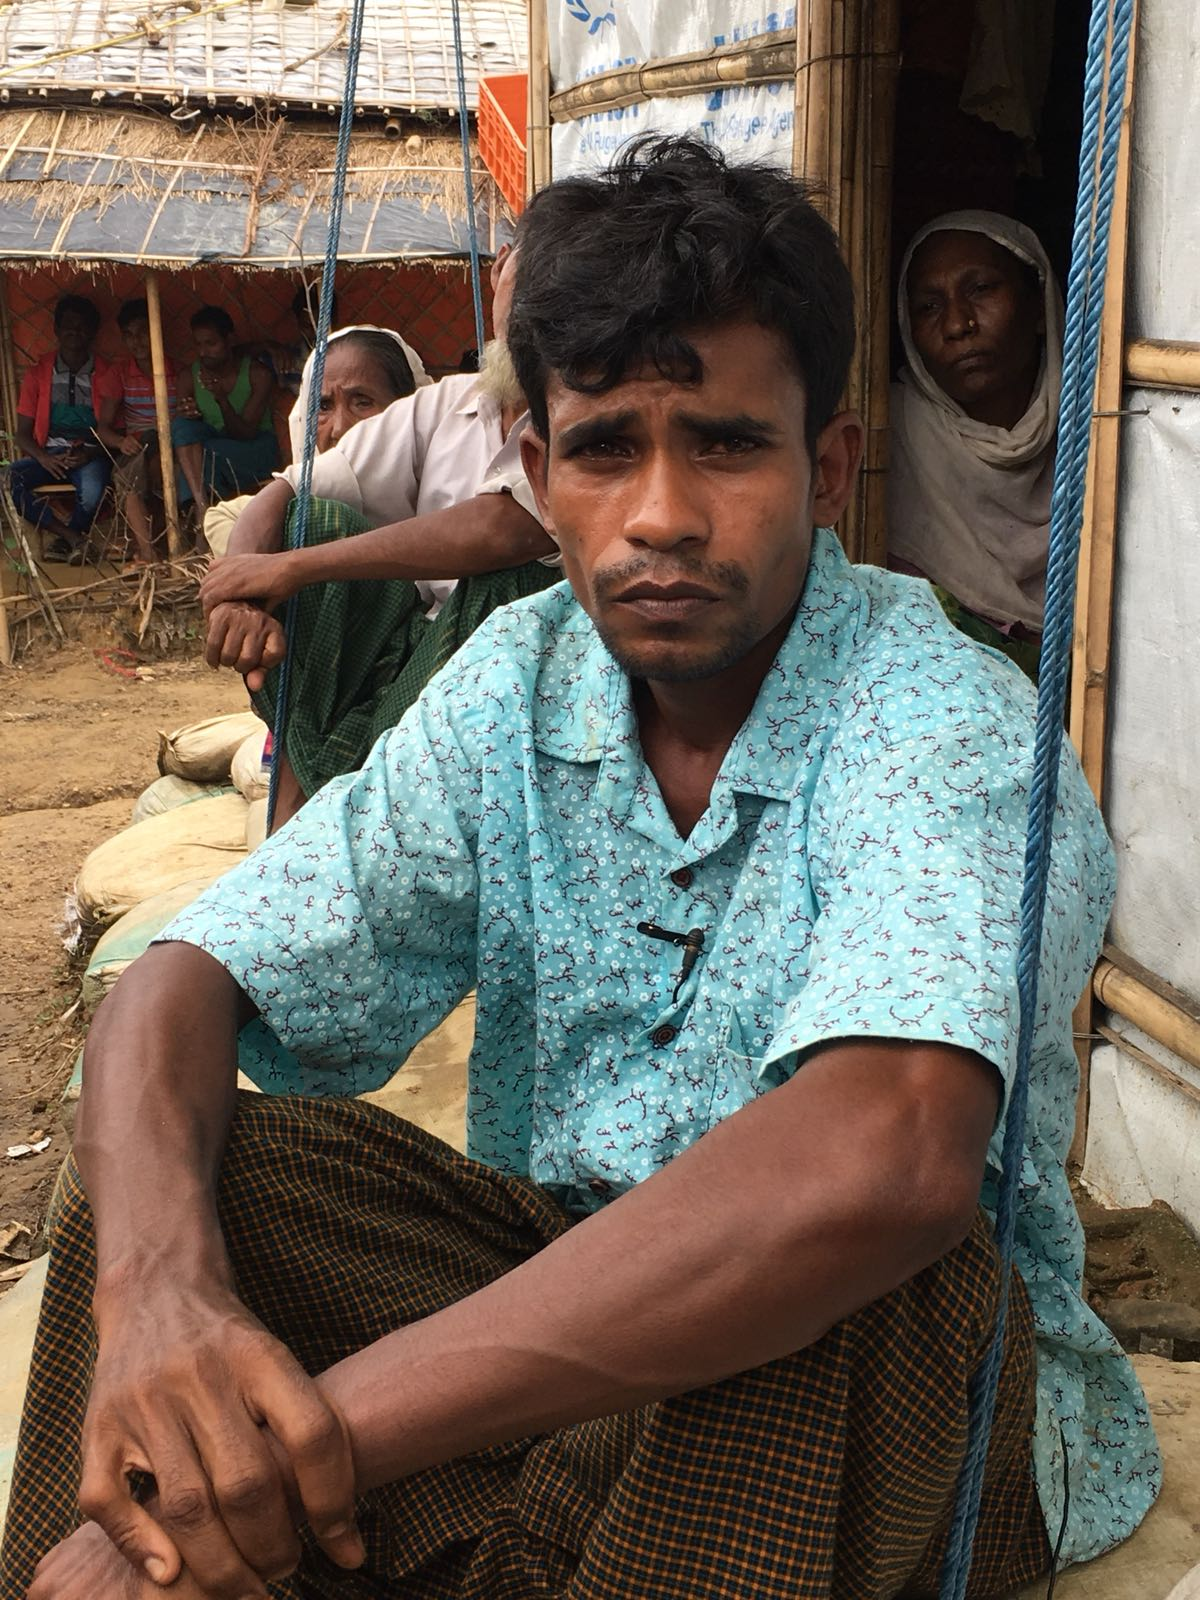 We want peace': A Rohingya family's 40 years of suffering